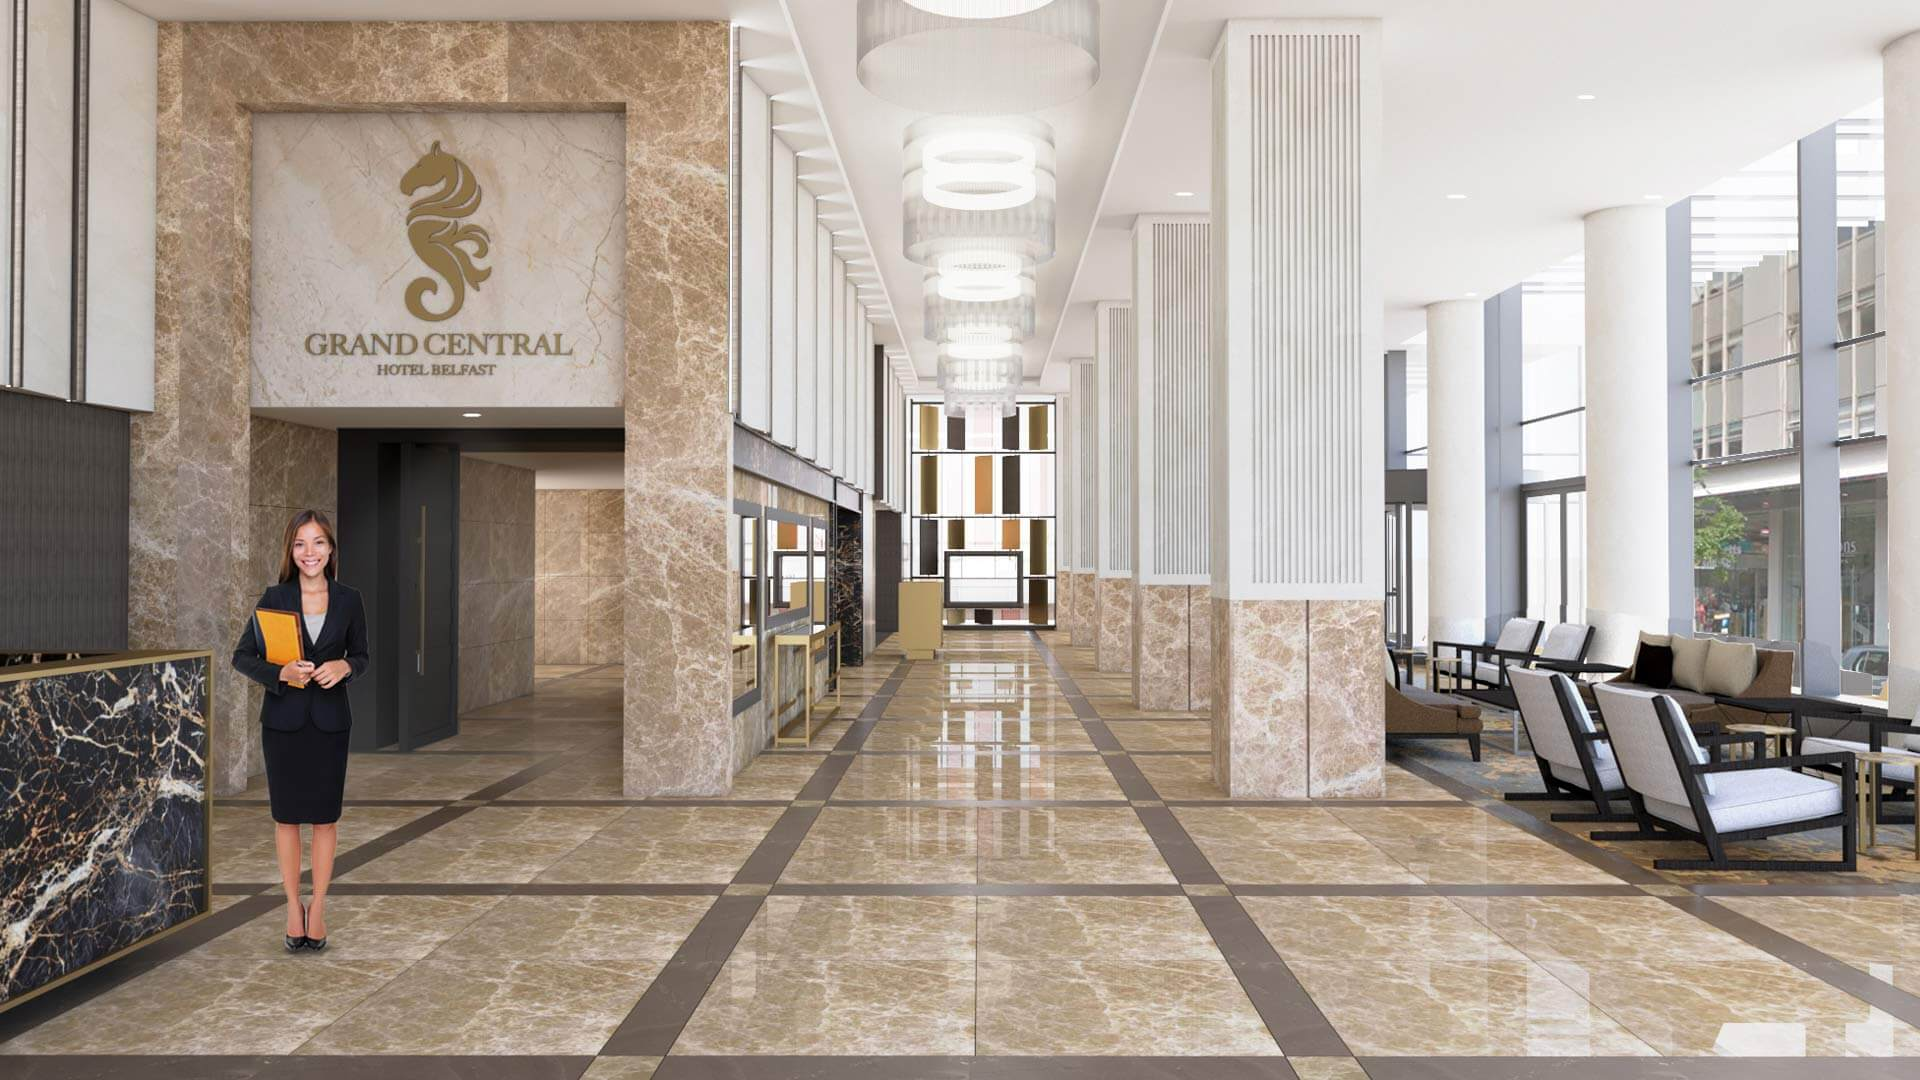 The Grand Central Hotel In Belfast Opens Hotel Designs